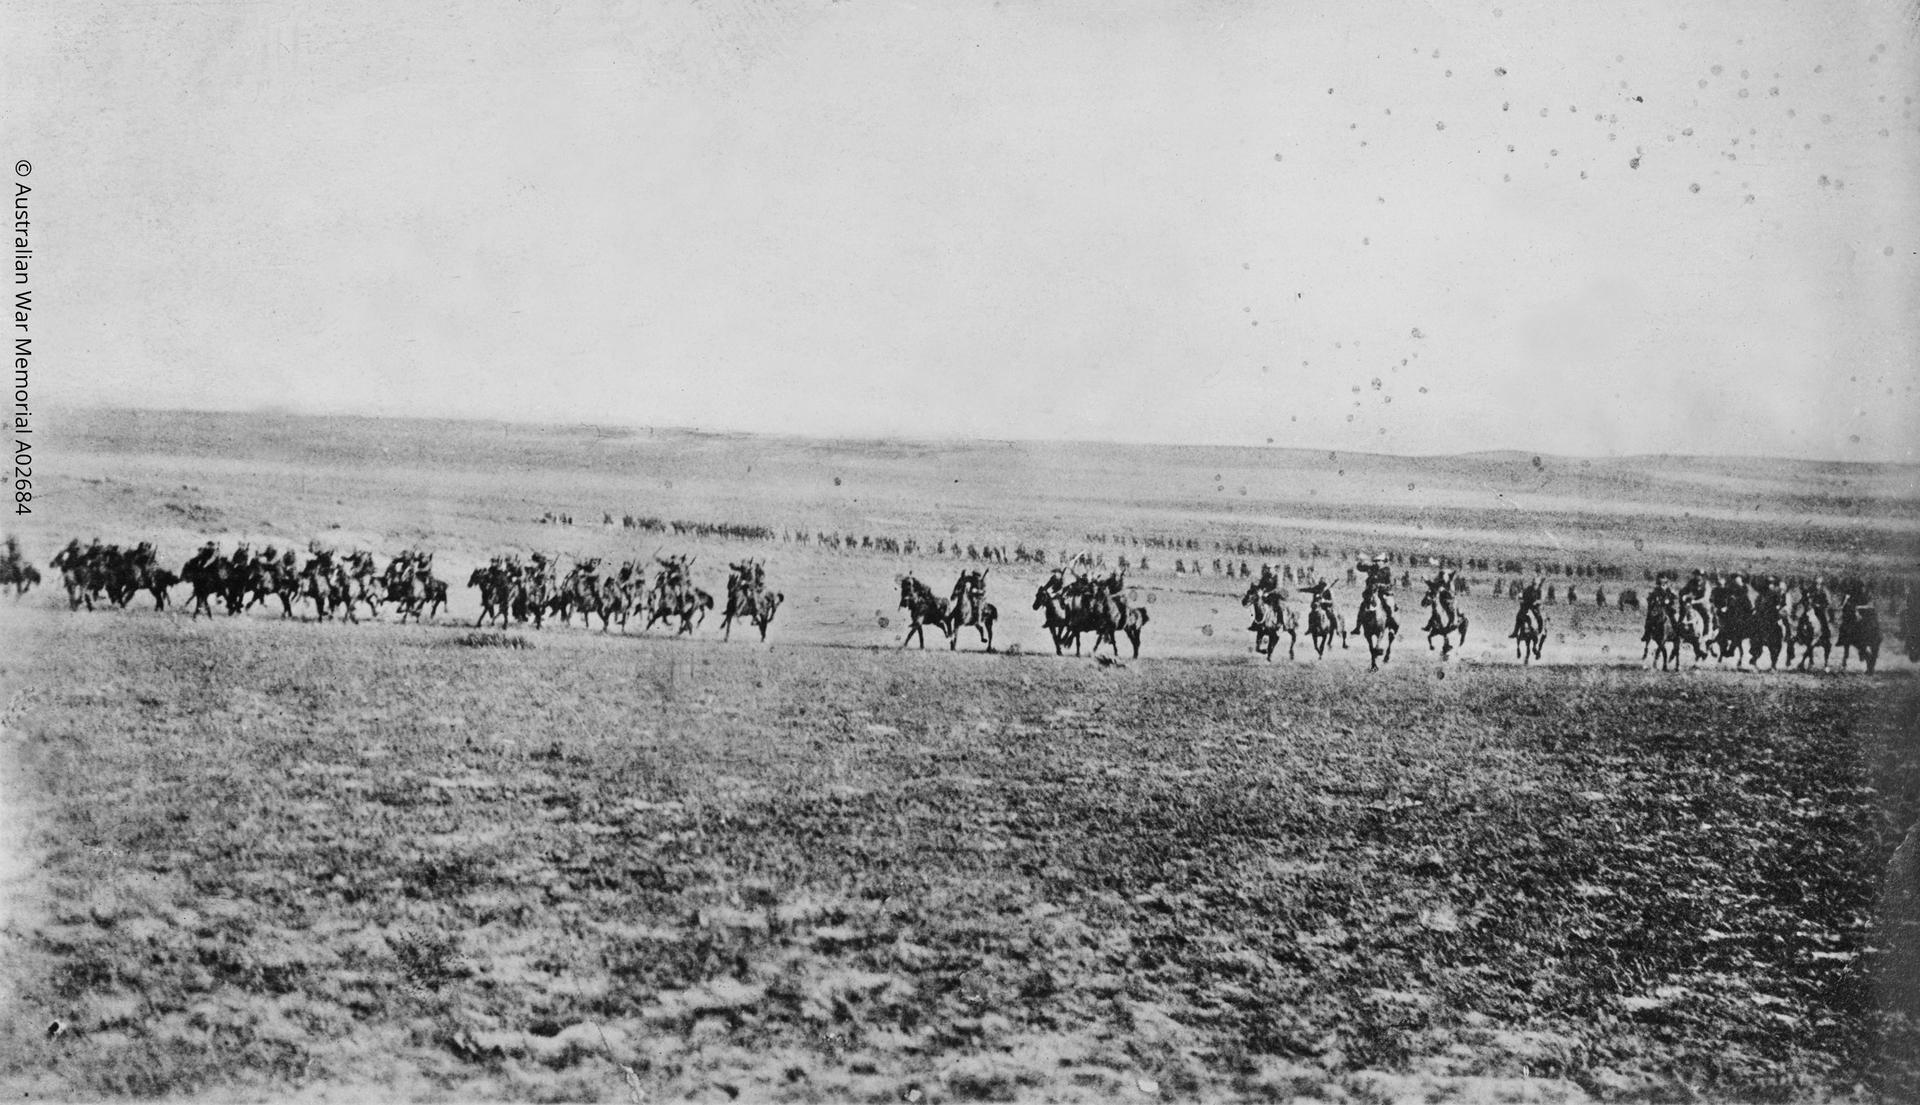 'Thunder of a light horse charge'. This photograph has been described as one of the charge of the 4th Light Horse Brigade at Beersheba on the 31st October 1917, taken by a Turk whose camera was captured later in the day. © Australian War Memorial A02684